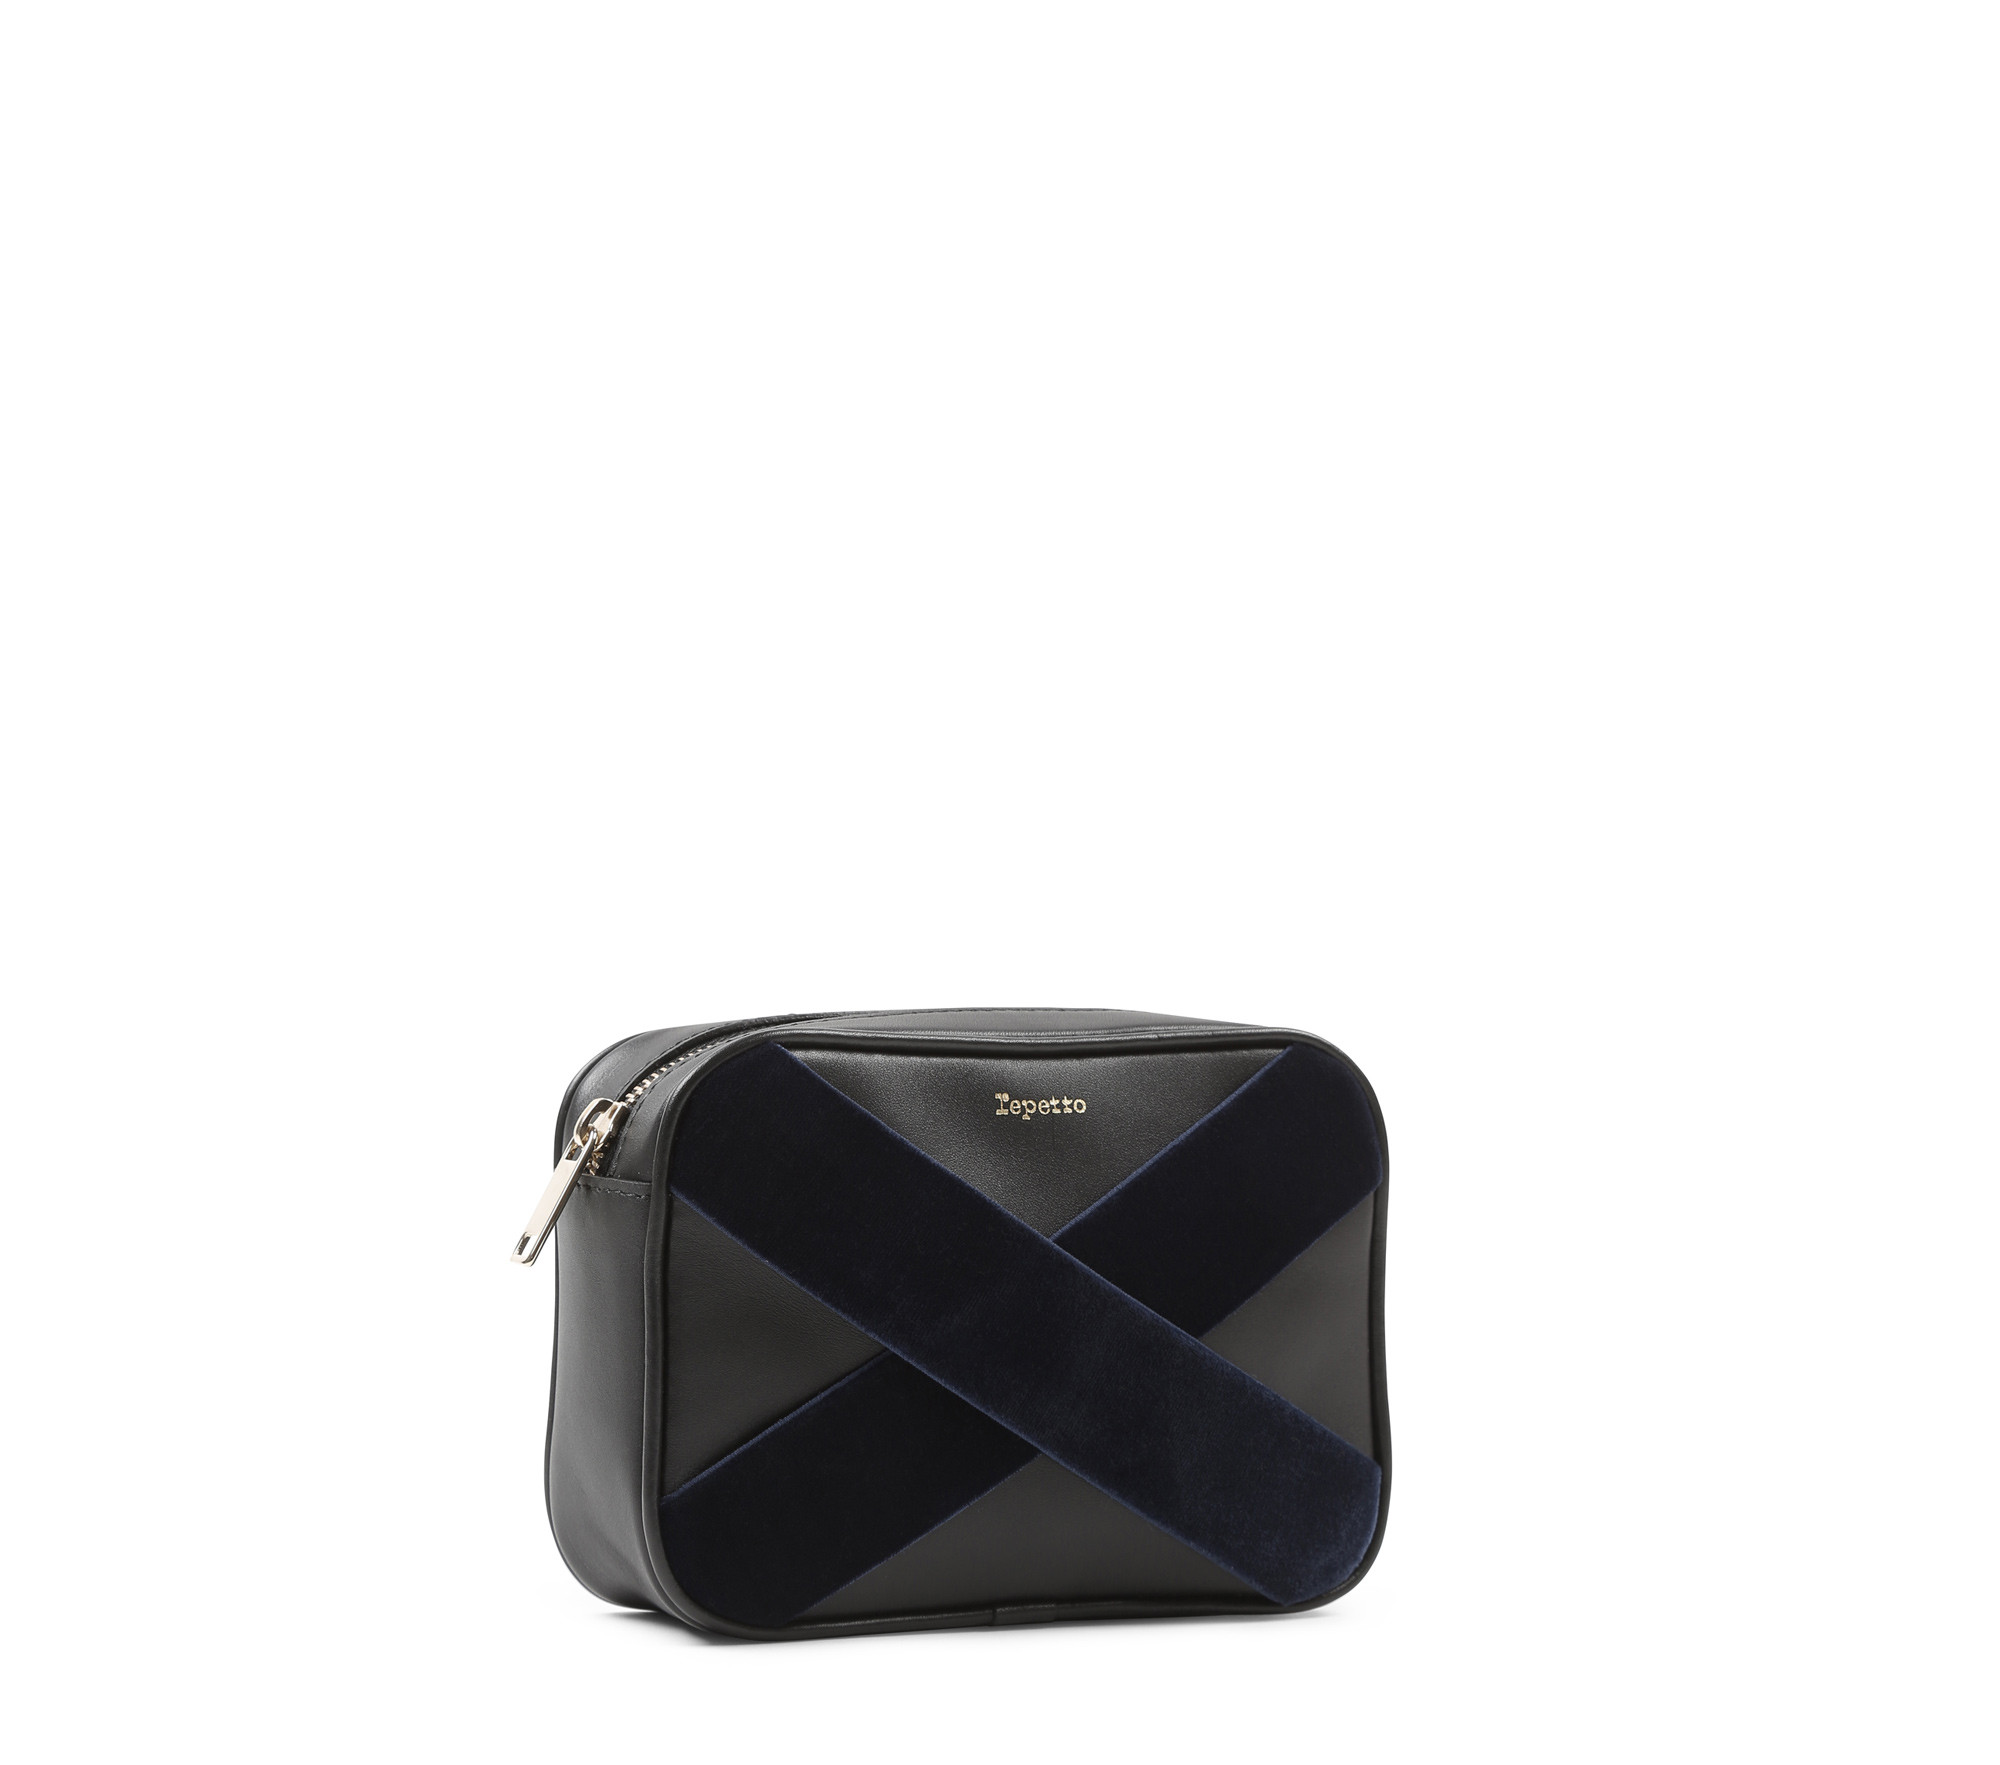 Adage clutch bag